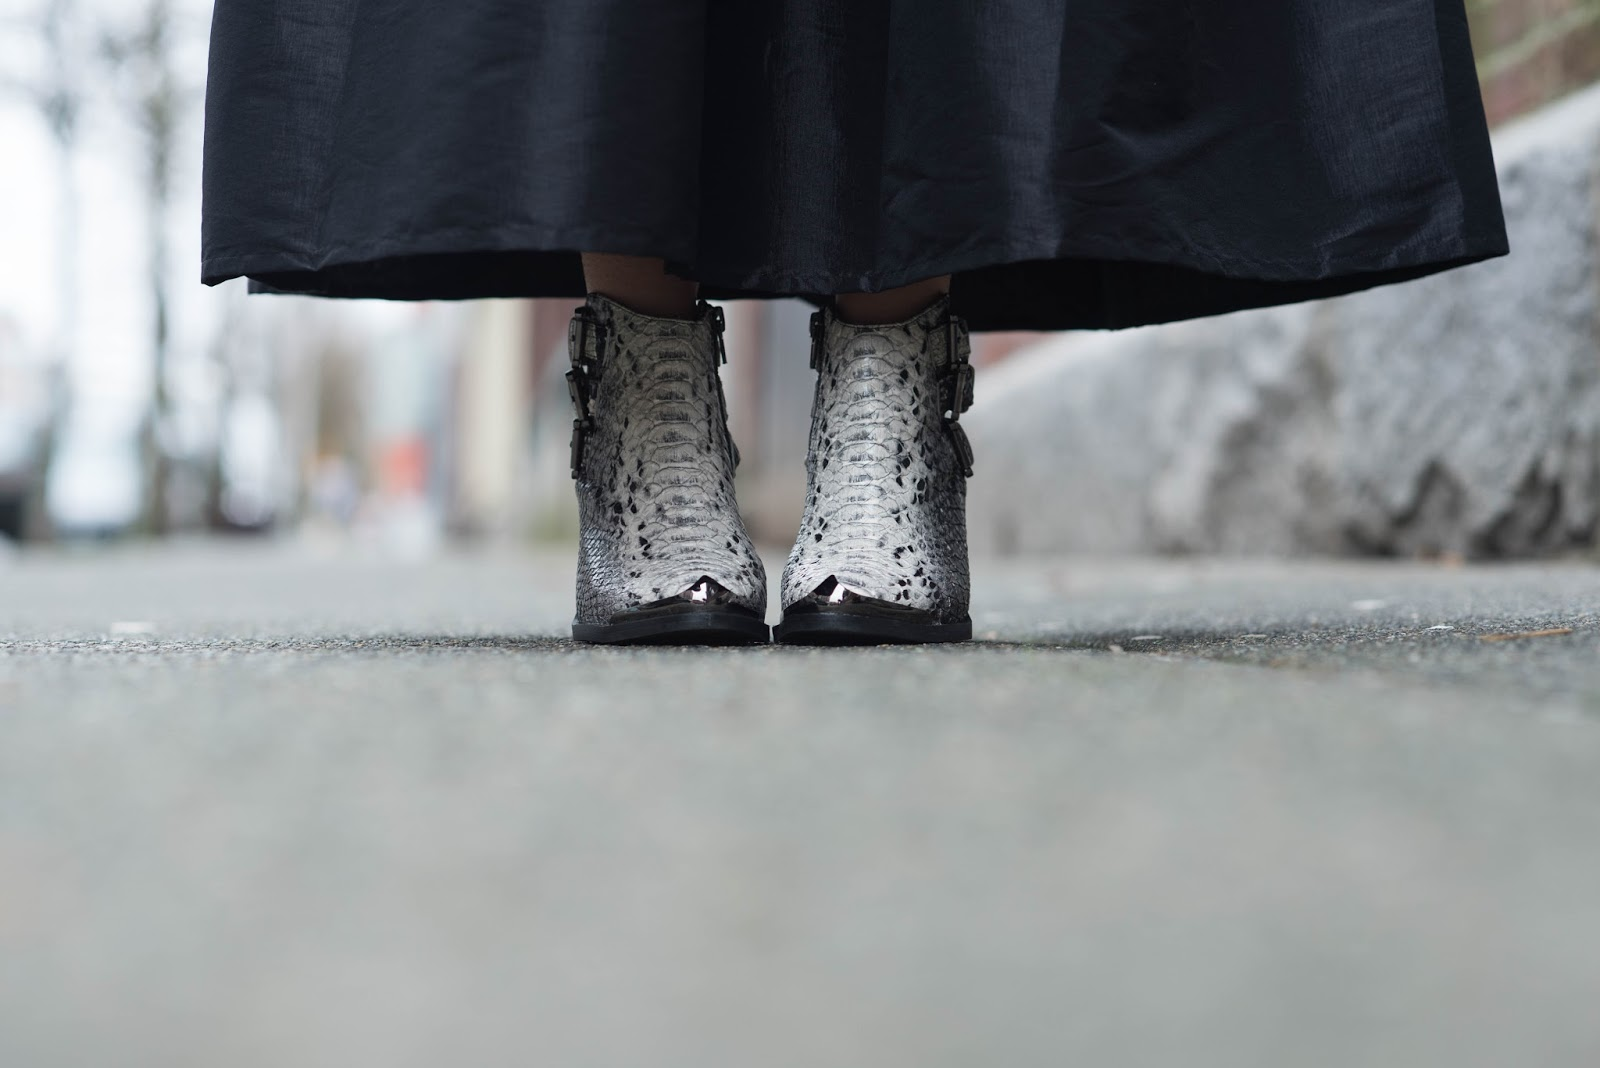 coco and vera top vancouver fashion blog jeffrey campbell snakeskin ankle boots black maxi skirt